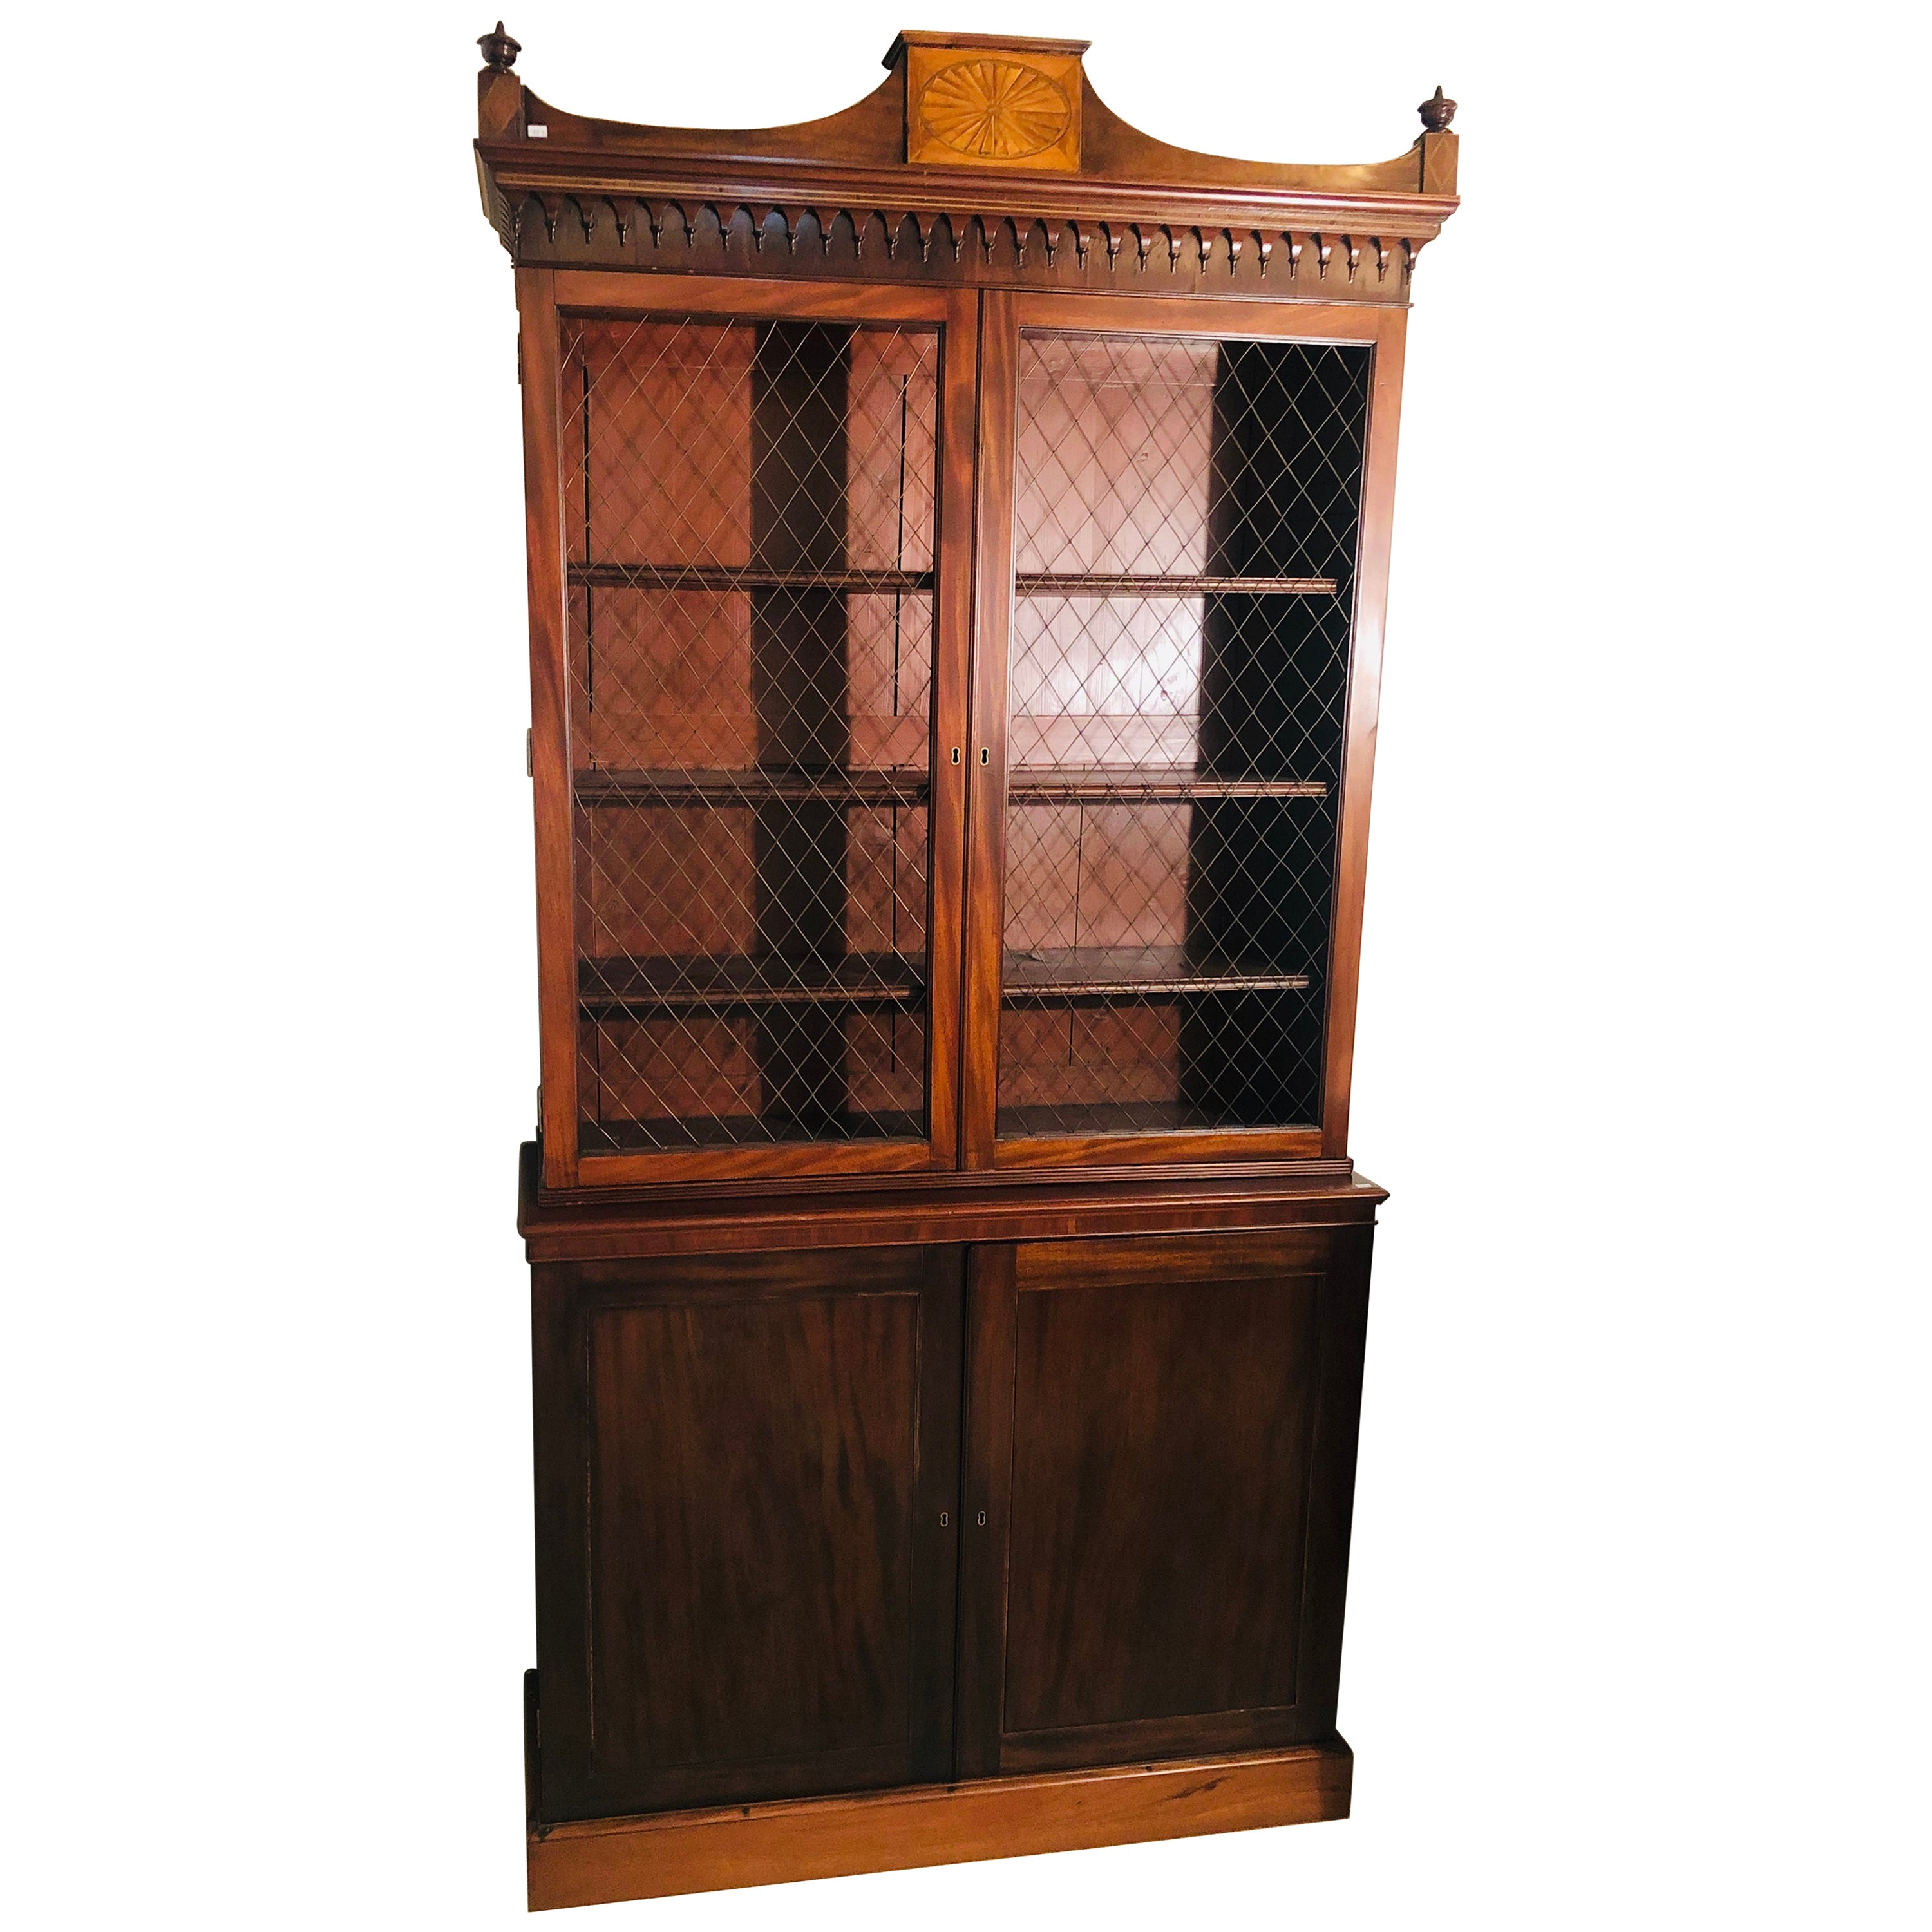 19th Century Sheraton Style English Cupboard Bookcase with Grill Doors